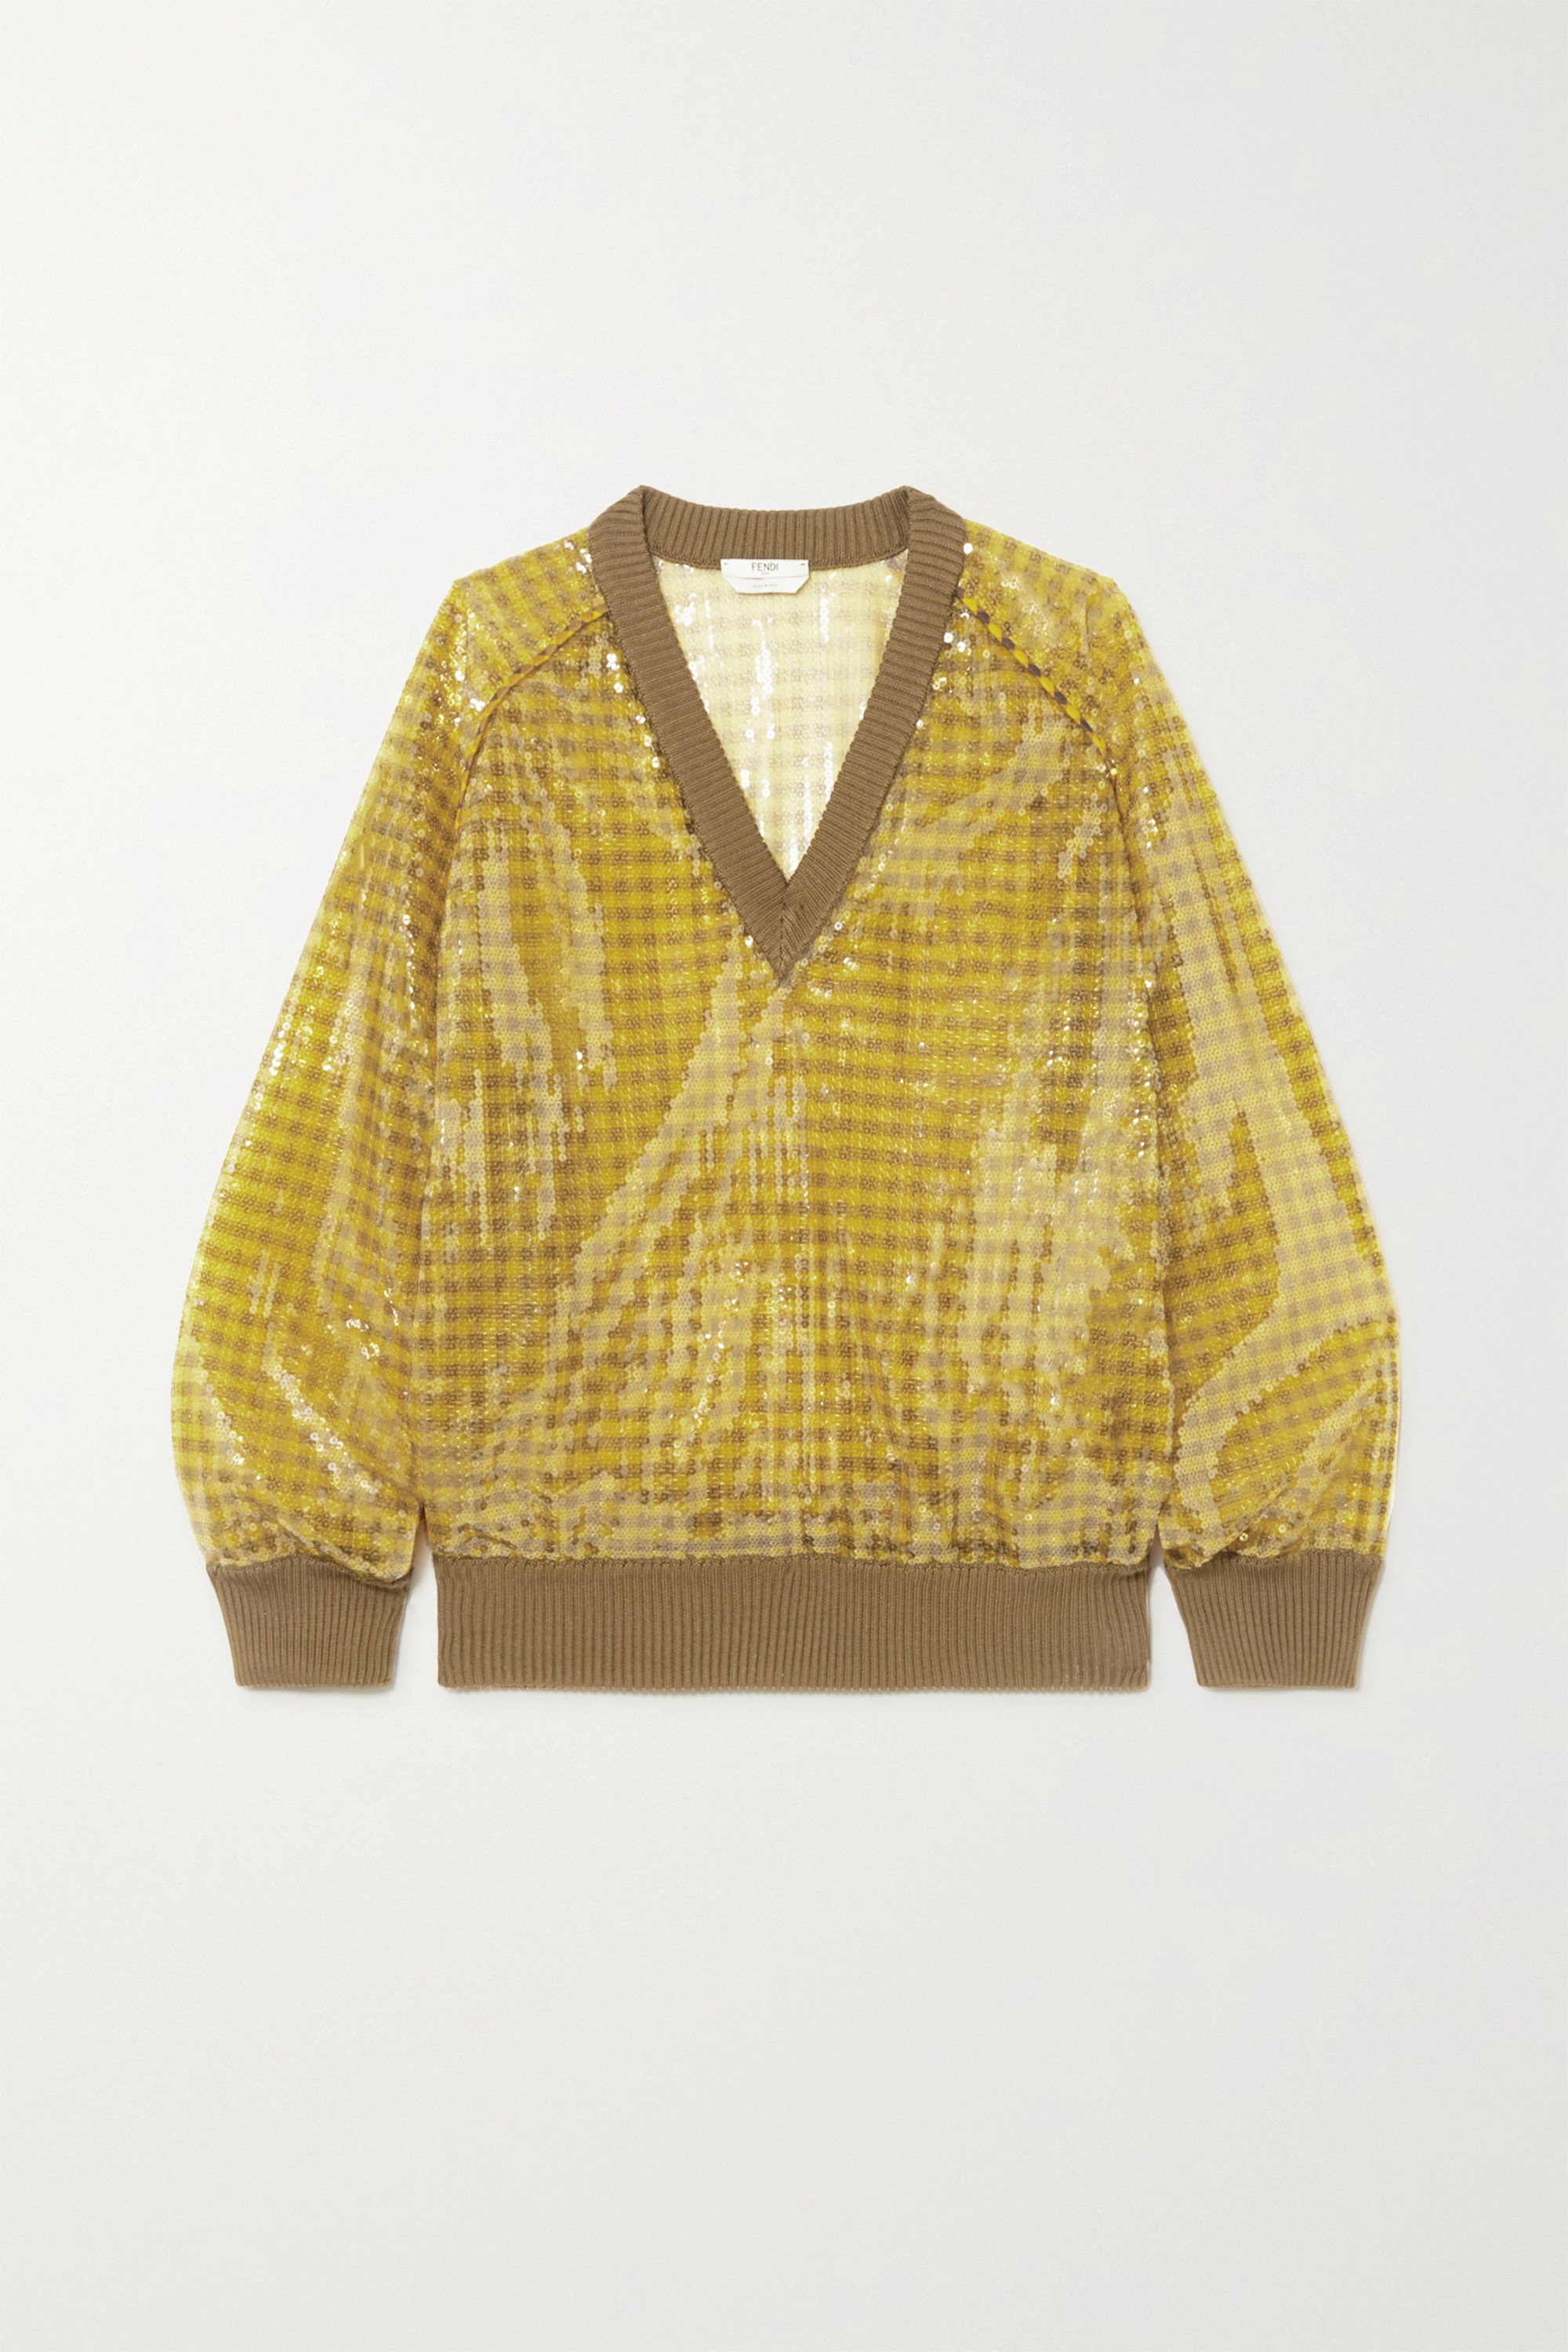 Fendi Sequined checked knitted sweater